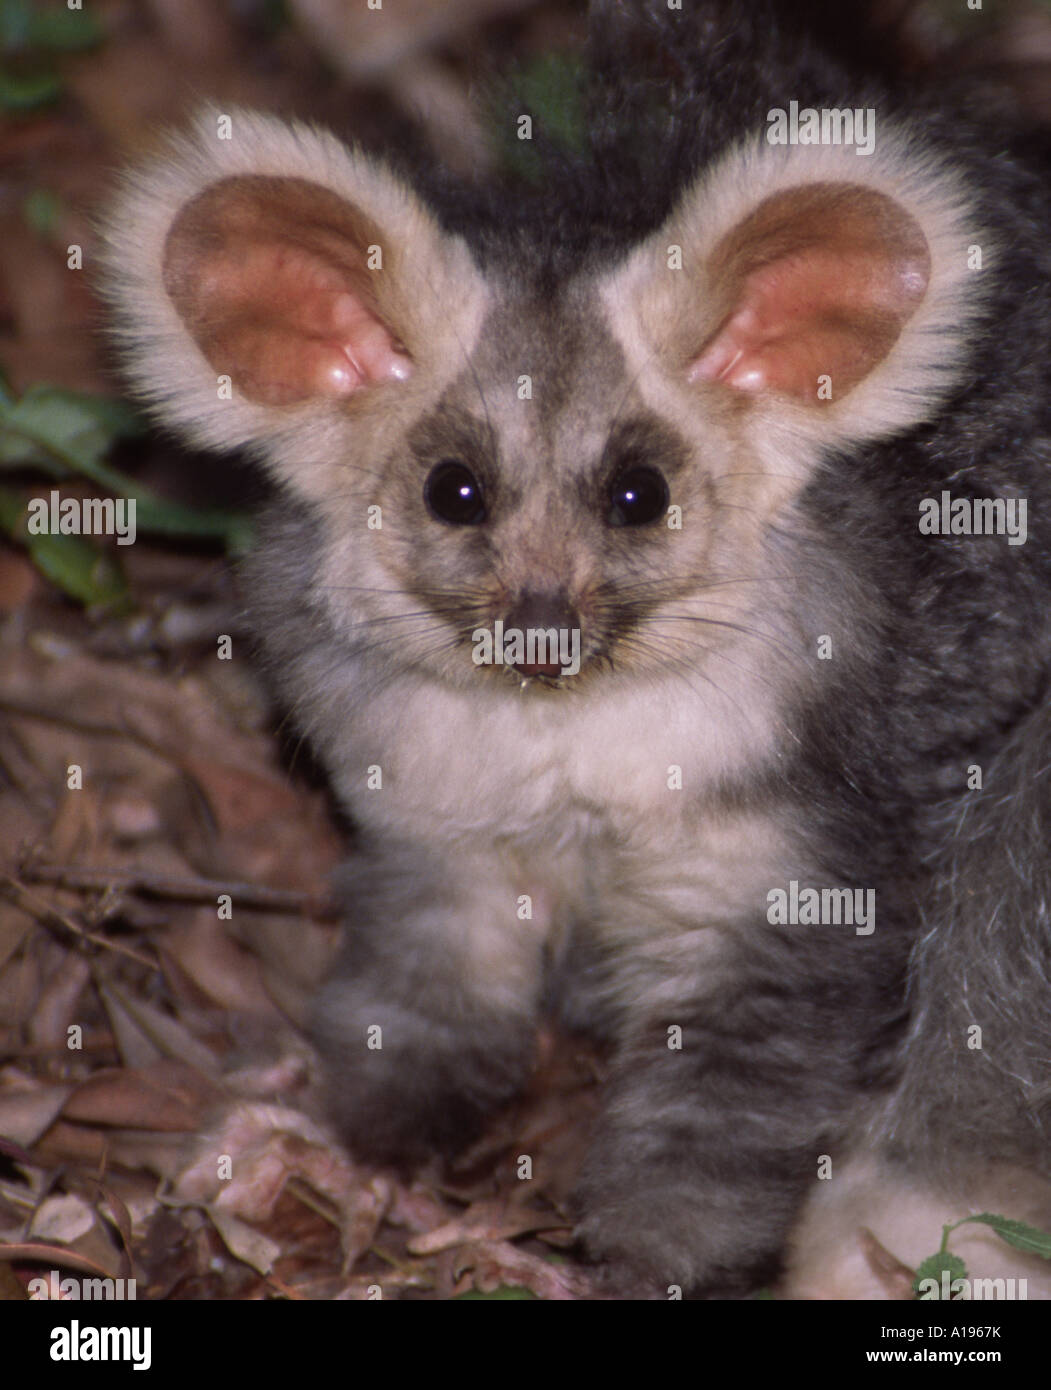 A rarely seen nocturnal animal, an arboreal Australian greater glider, photographed in the wild in native forest - Stock Image